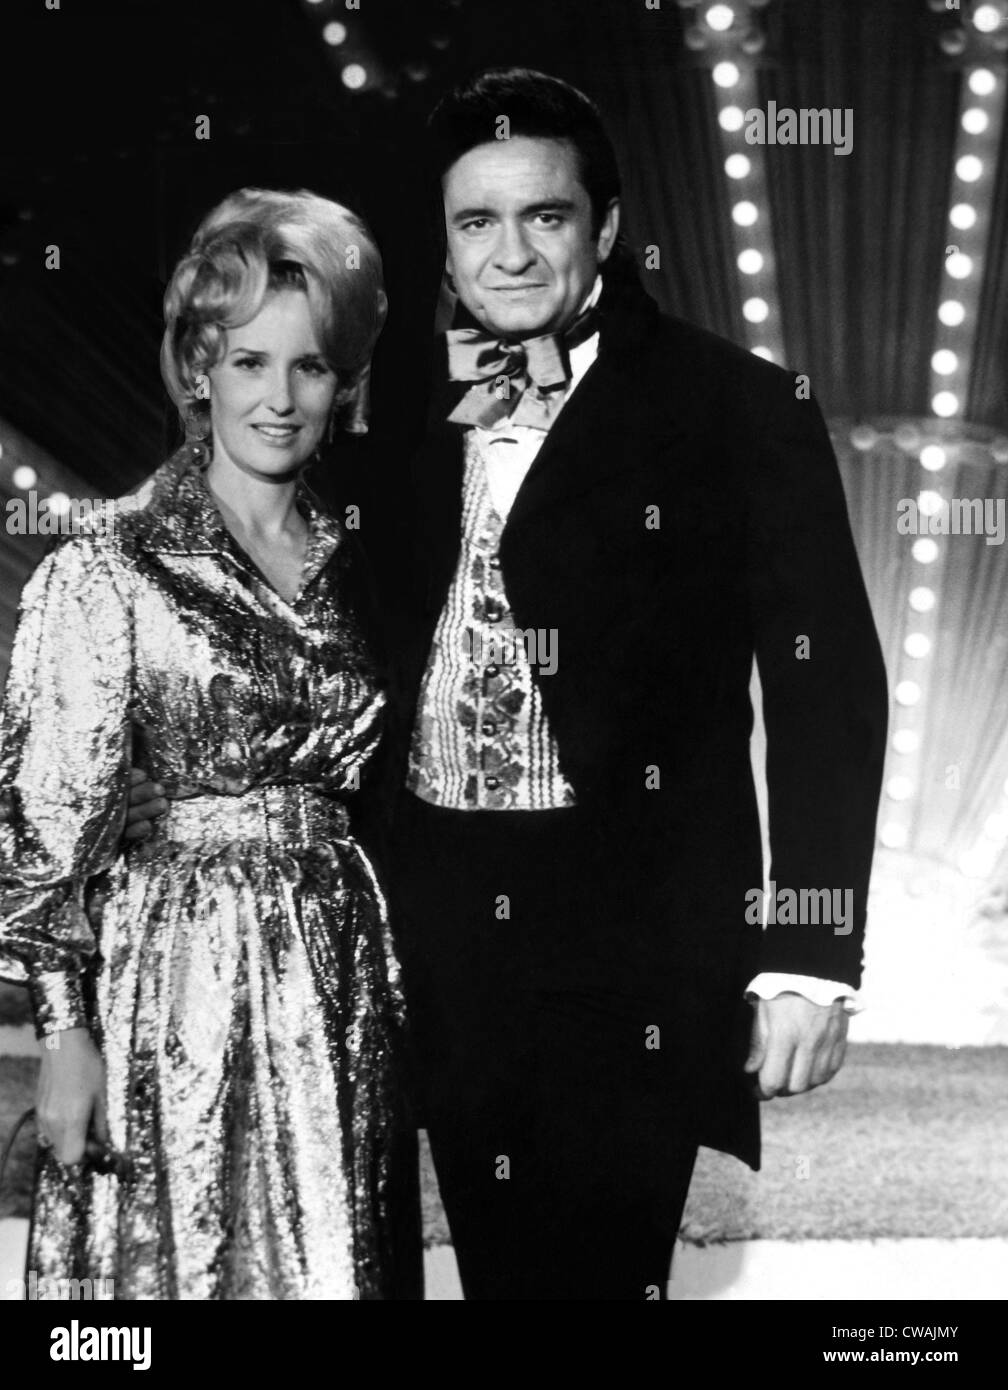 Country singers Tammy Wynette and Johnny Cash, 1971.. Courtesy: CSU Archives / Everett Collection - Stock Image